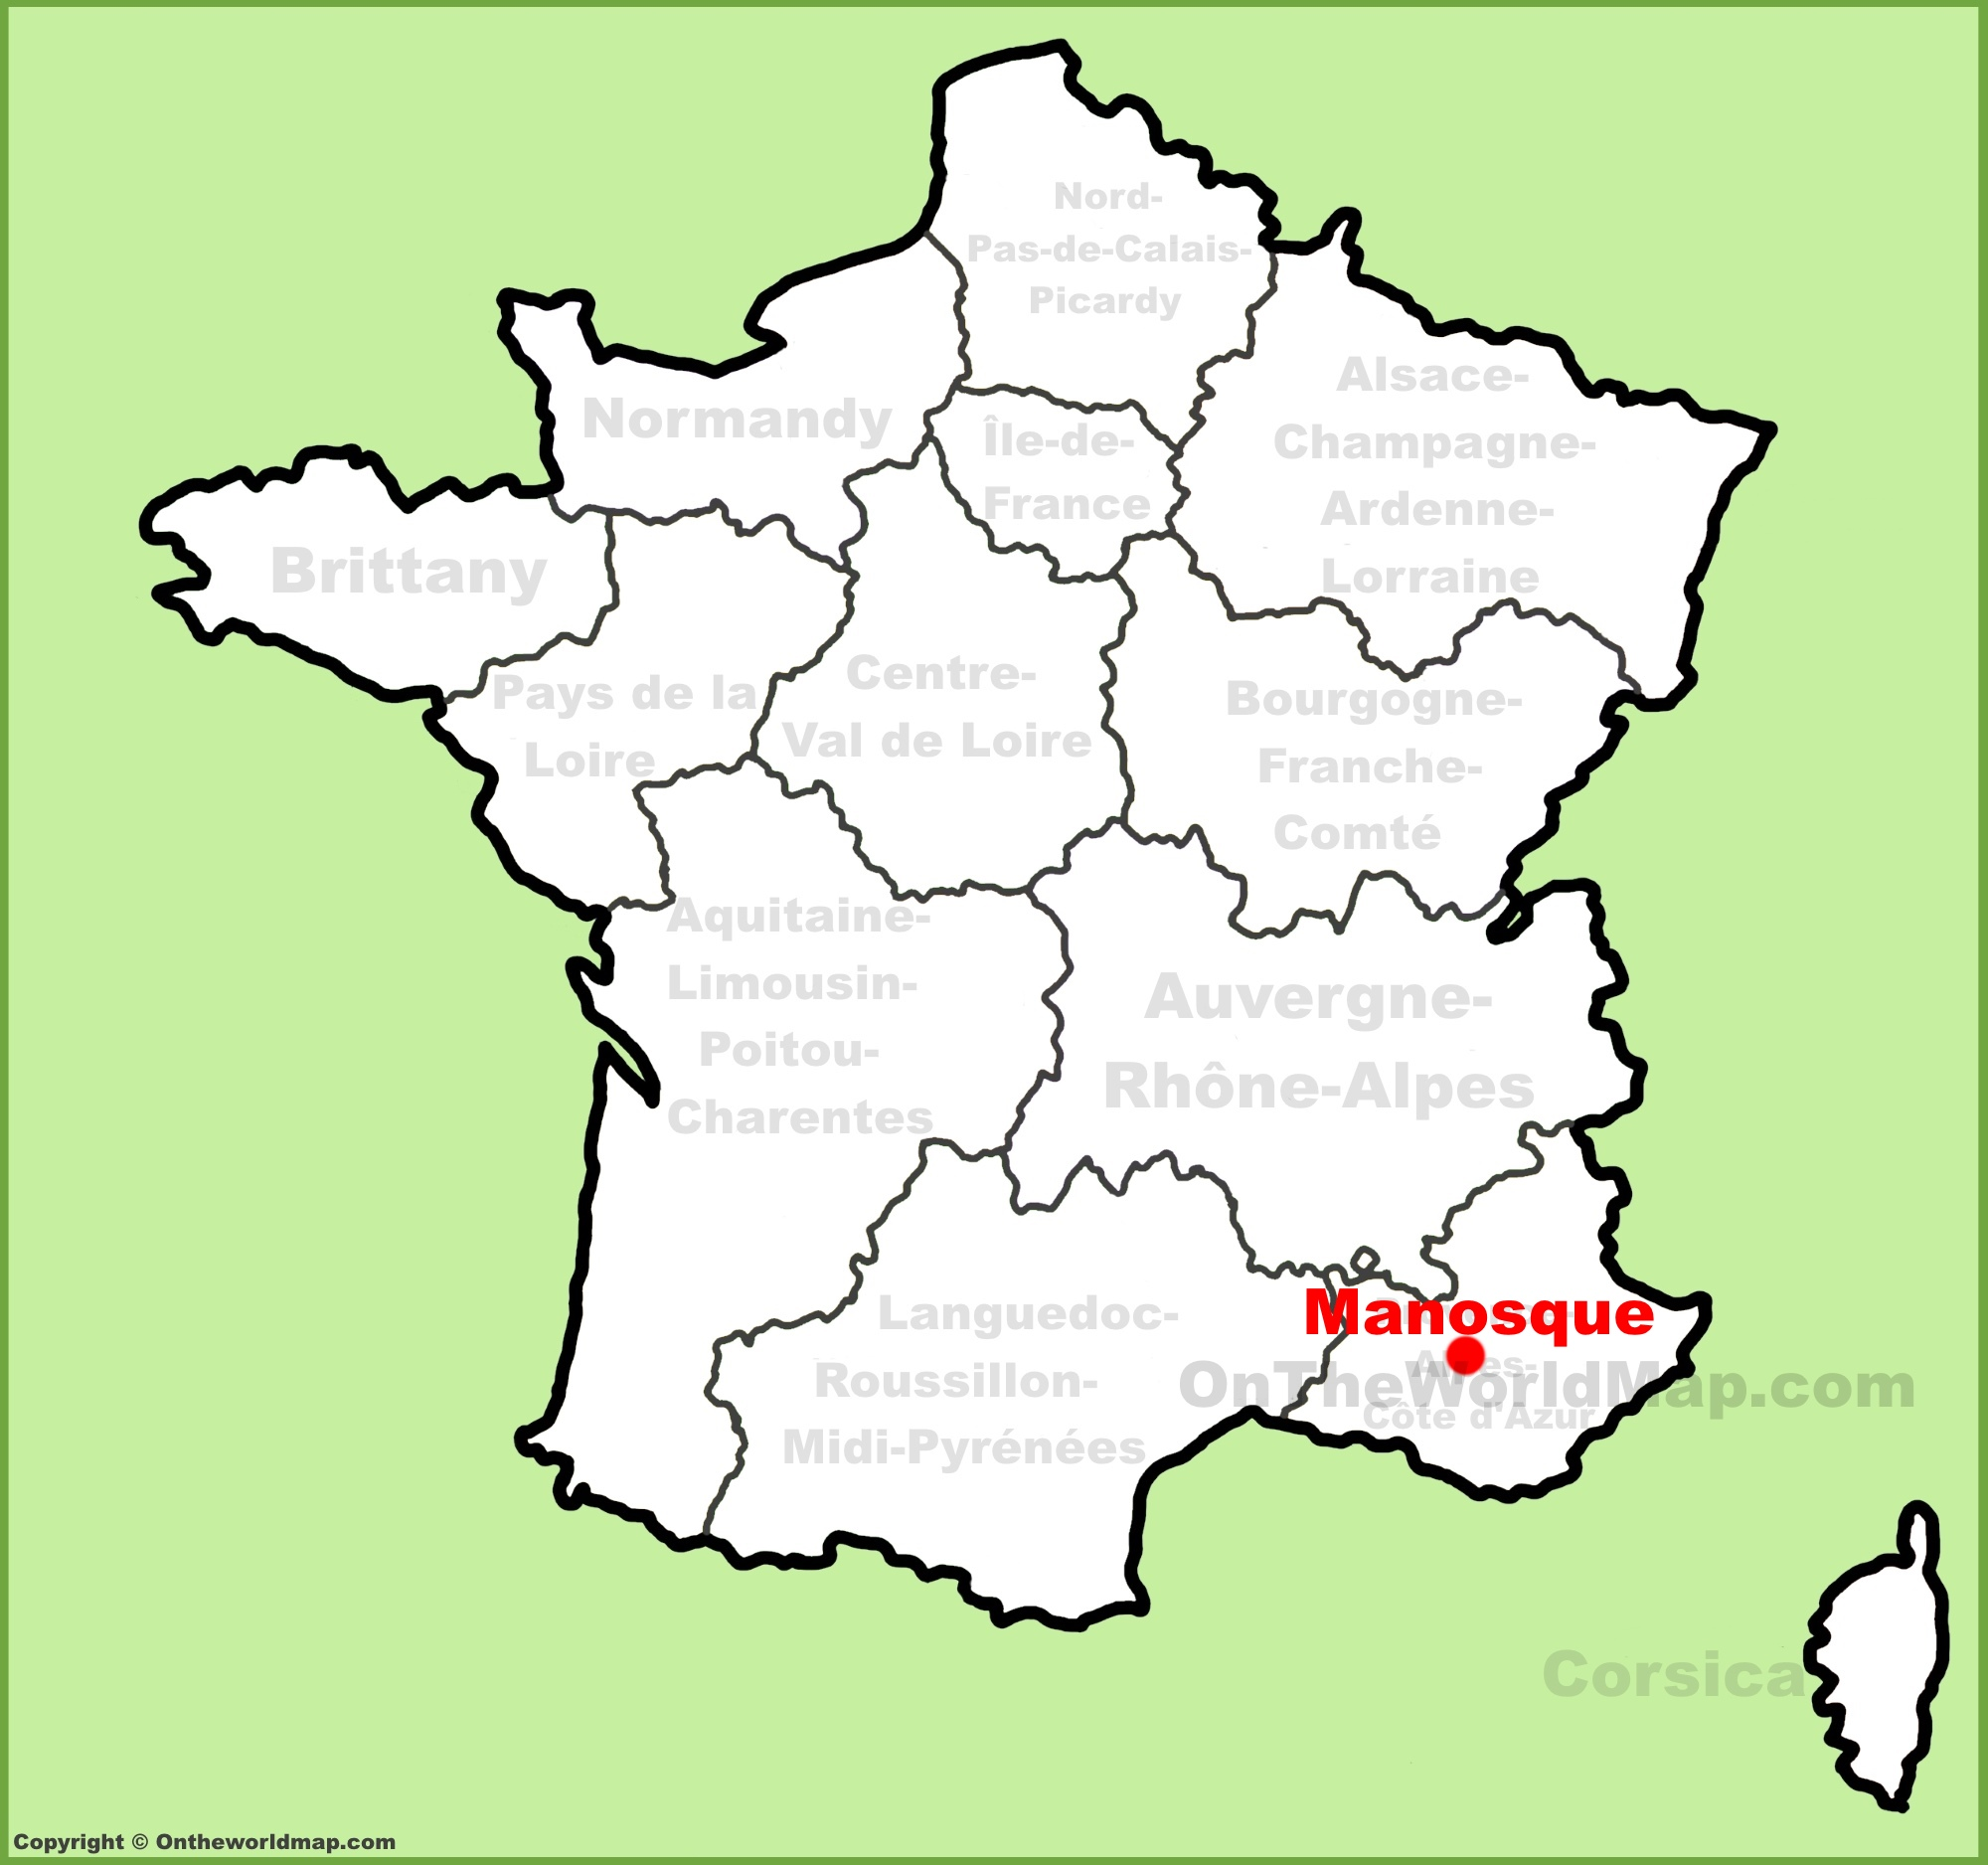 Manosque location on the France map